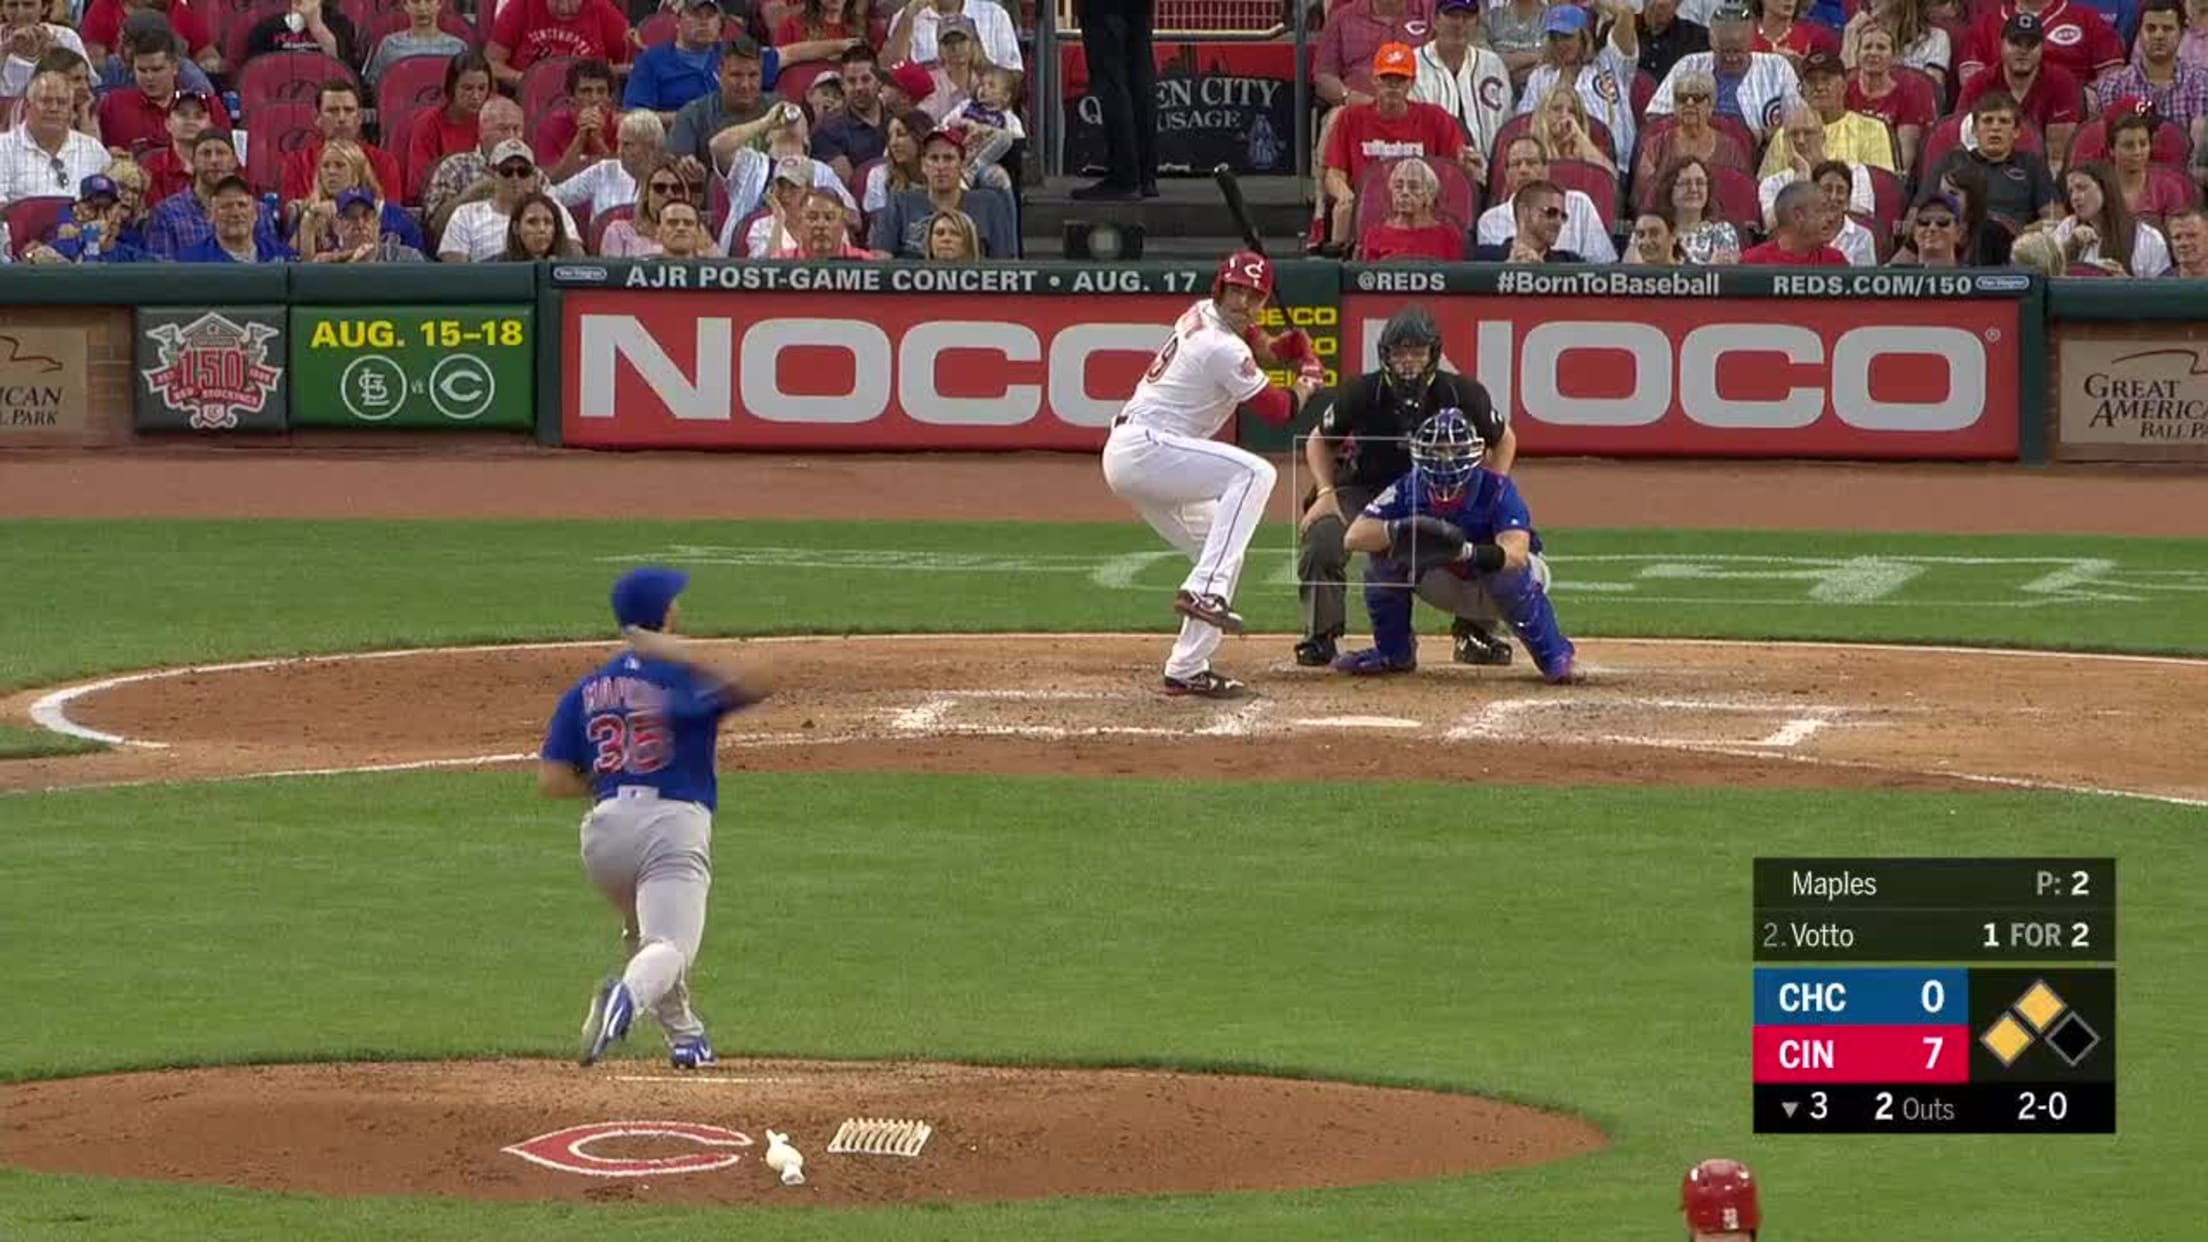 Joey Votto grounds out sharply, second baseman David Bote to first ...